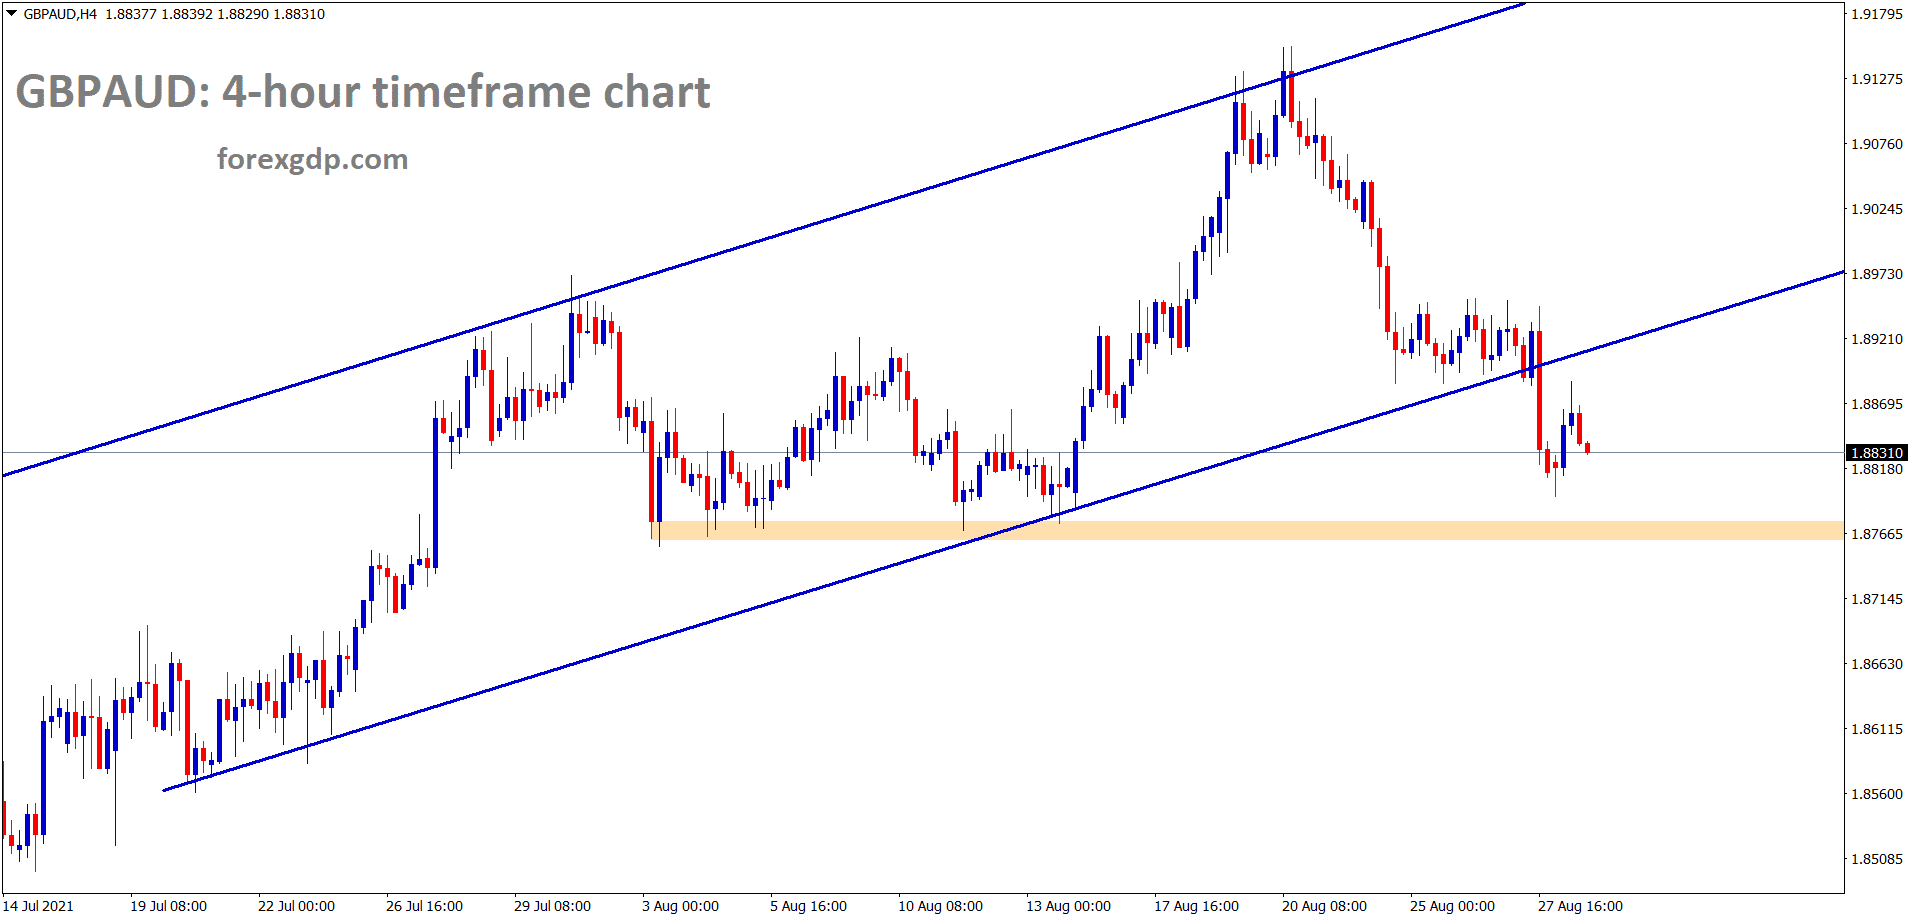 GBPAUD has broken the bottom level of the uptrend line now its trying to test the horizontal support area